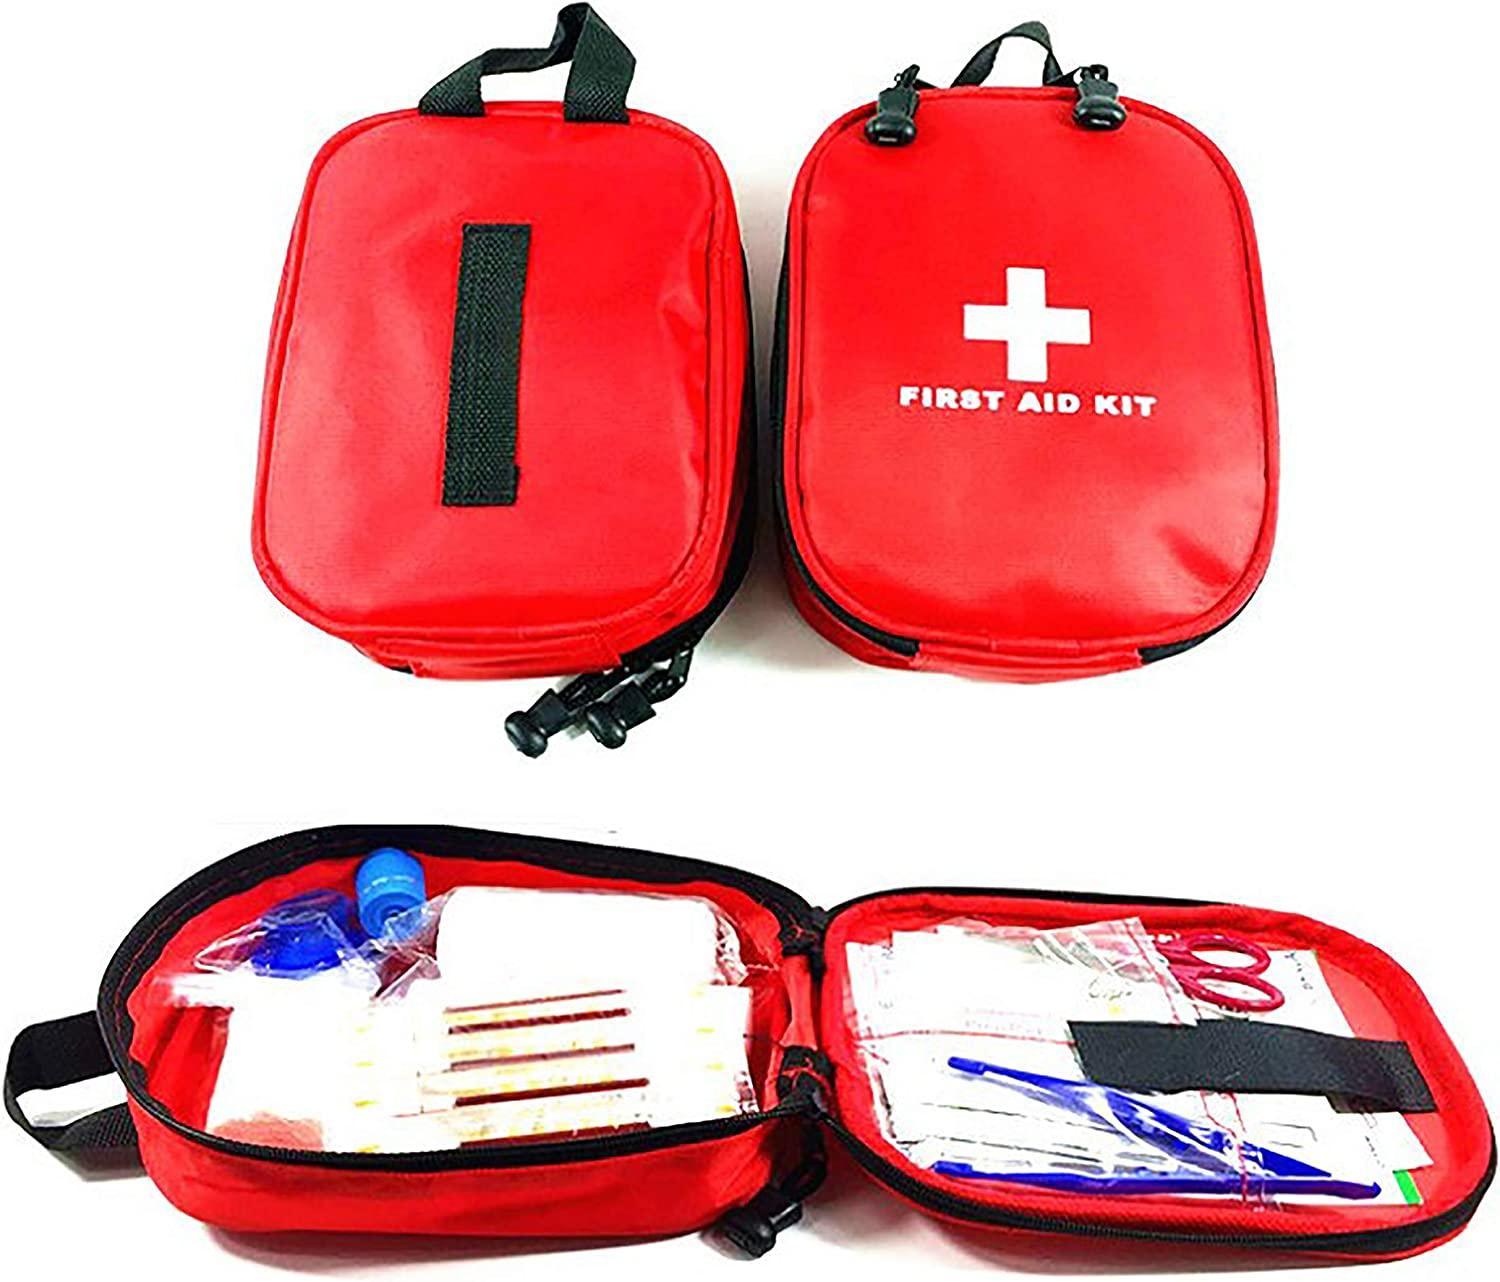 SCHOLMART First Aid Kit Pouch Tote, Small Storage Compact, Portable Emergency Survival Medicine Bag, Home Office Travel Healing Pack, Camping Sport Hiking Gym Pack (Red Packet - 100 Pieces)